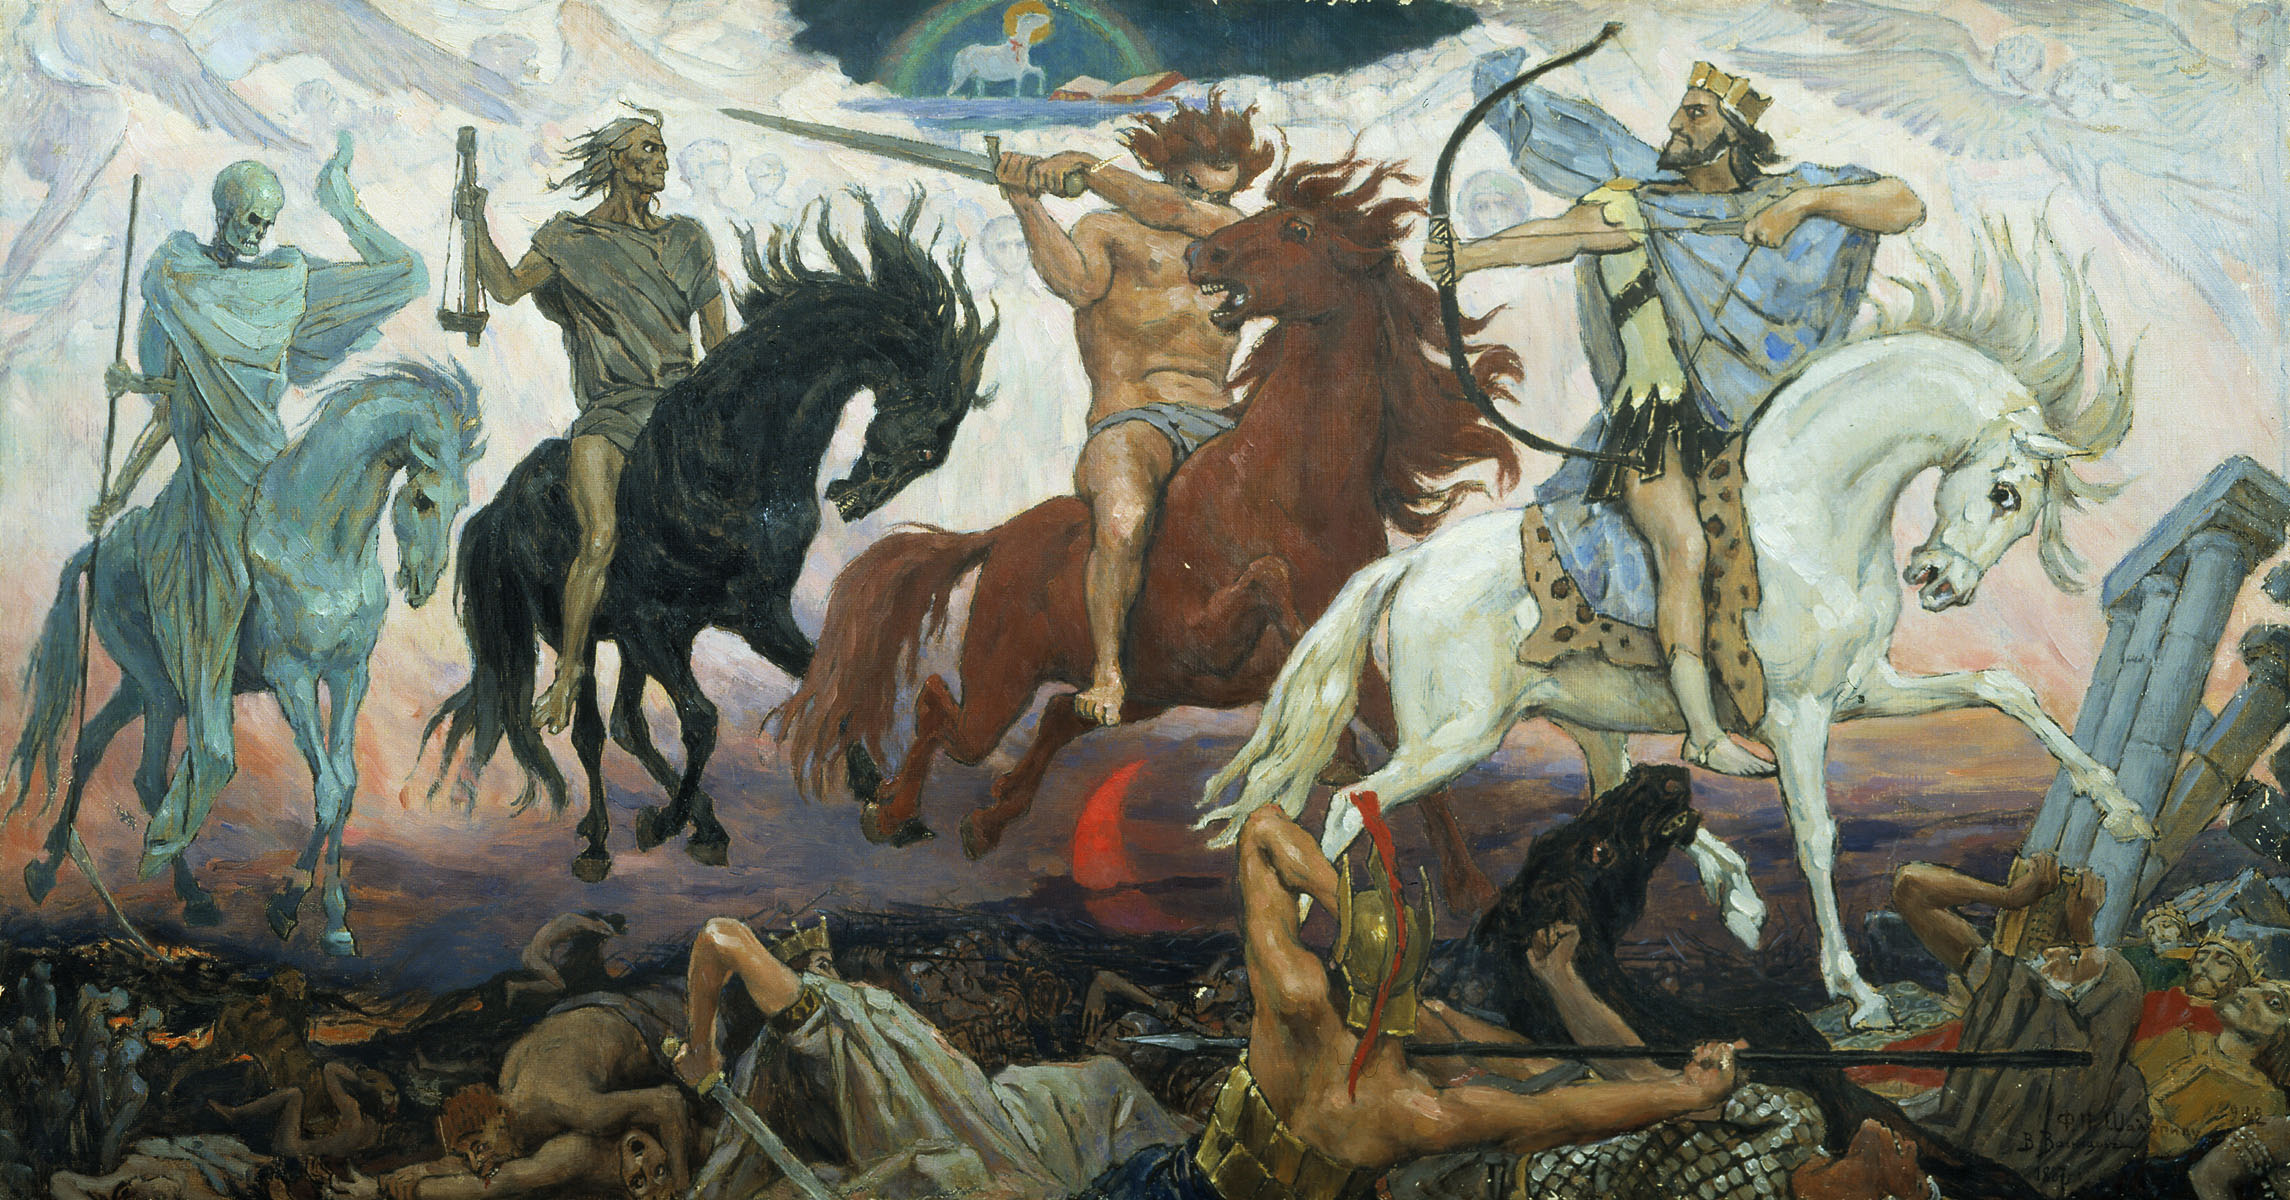 Four Horsemen of the Apocalypse by Vasnetsov